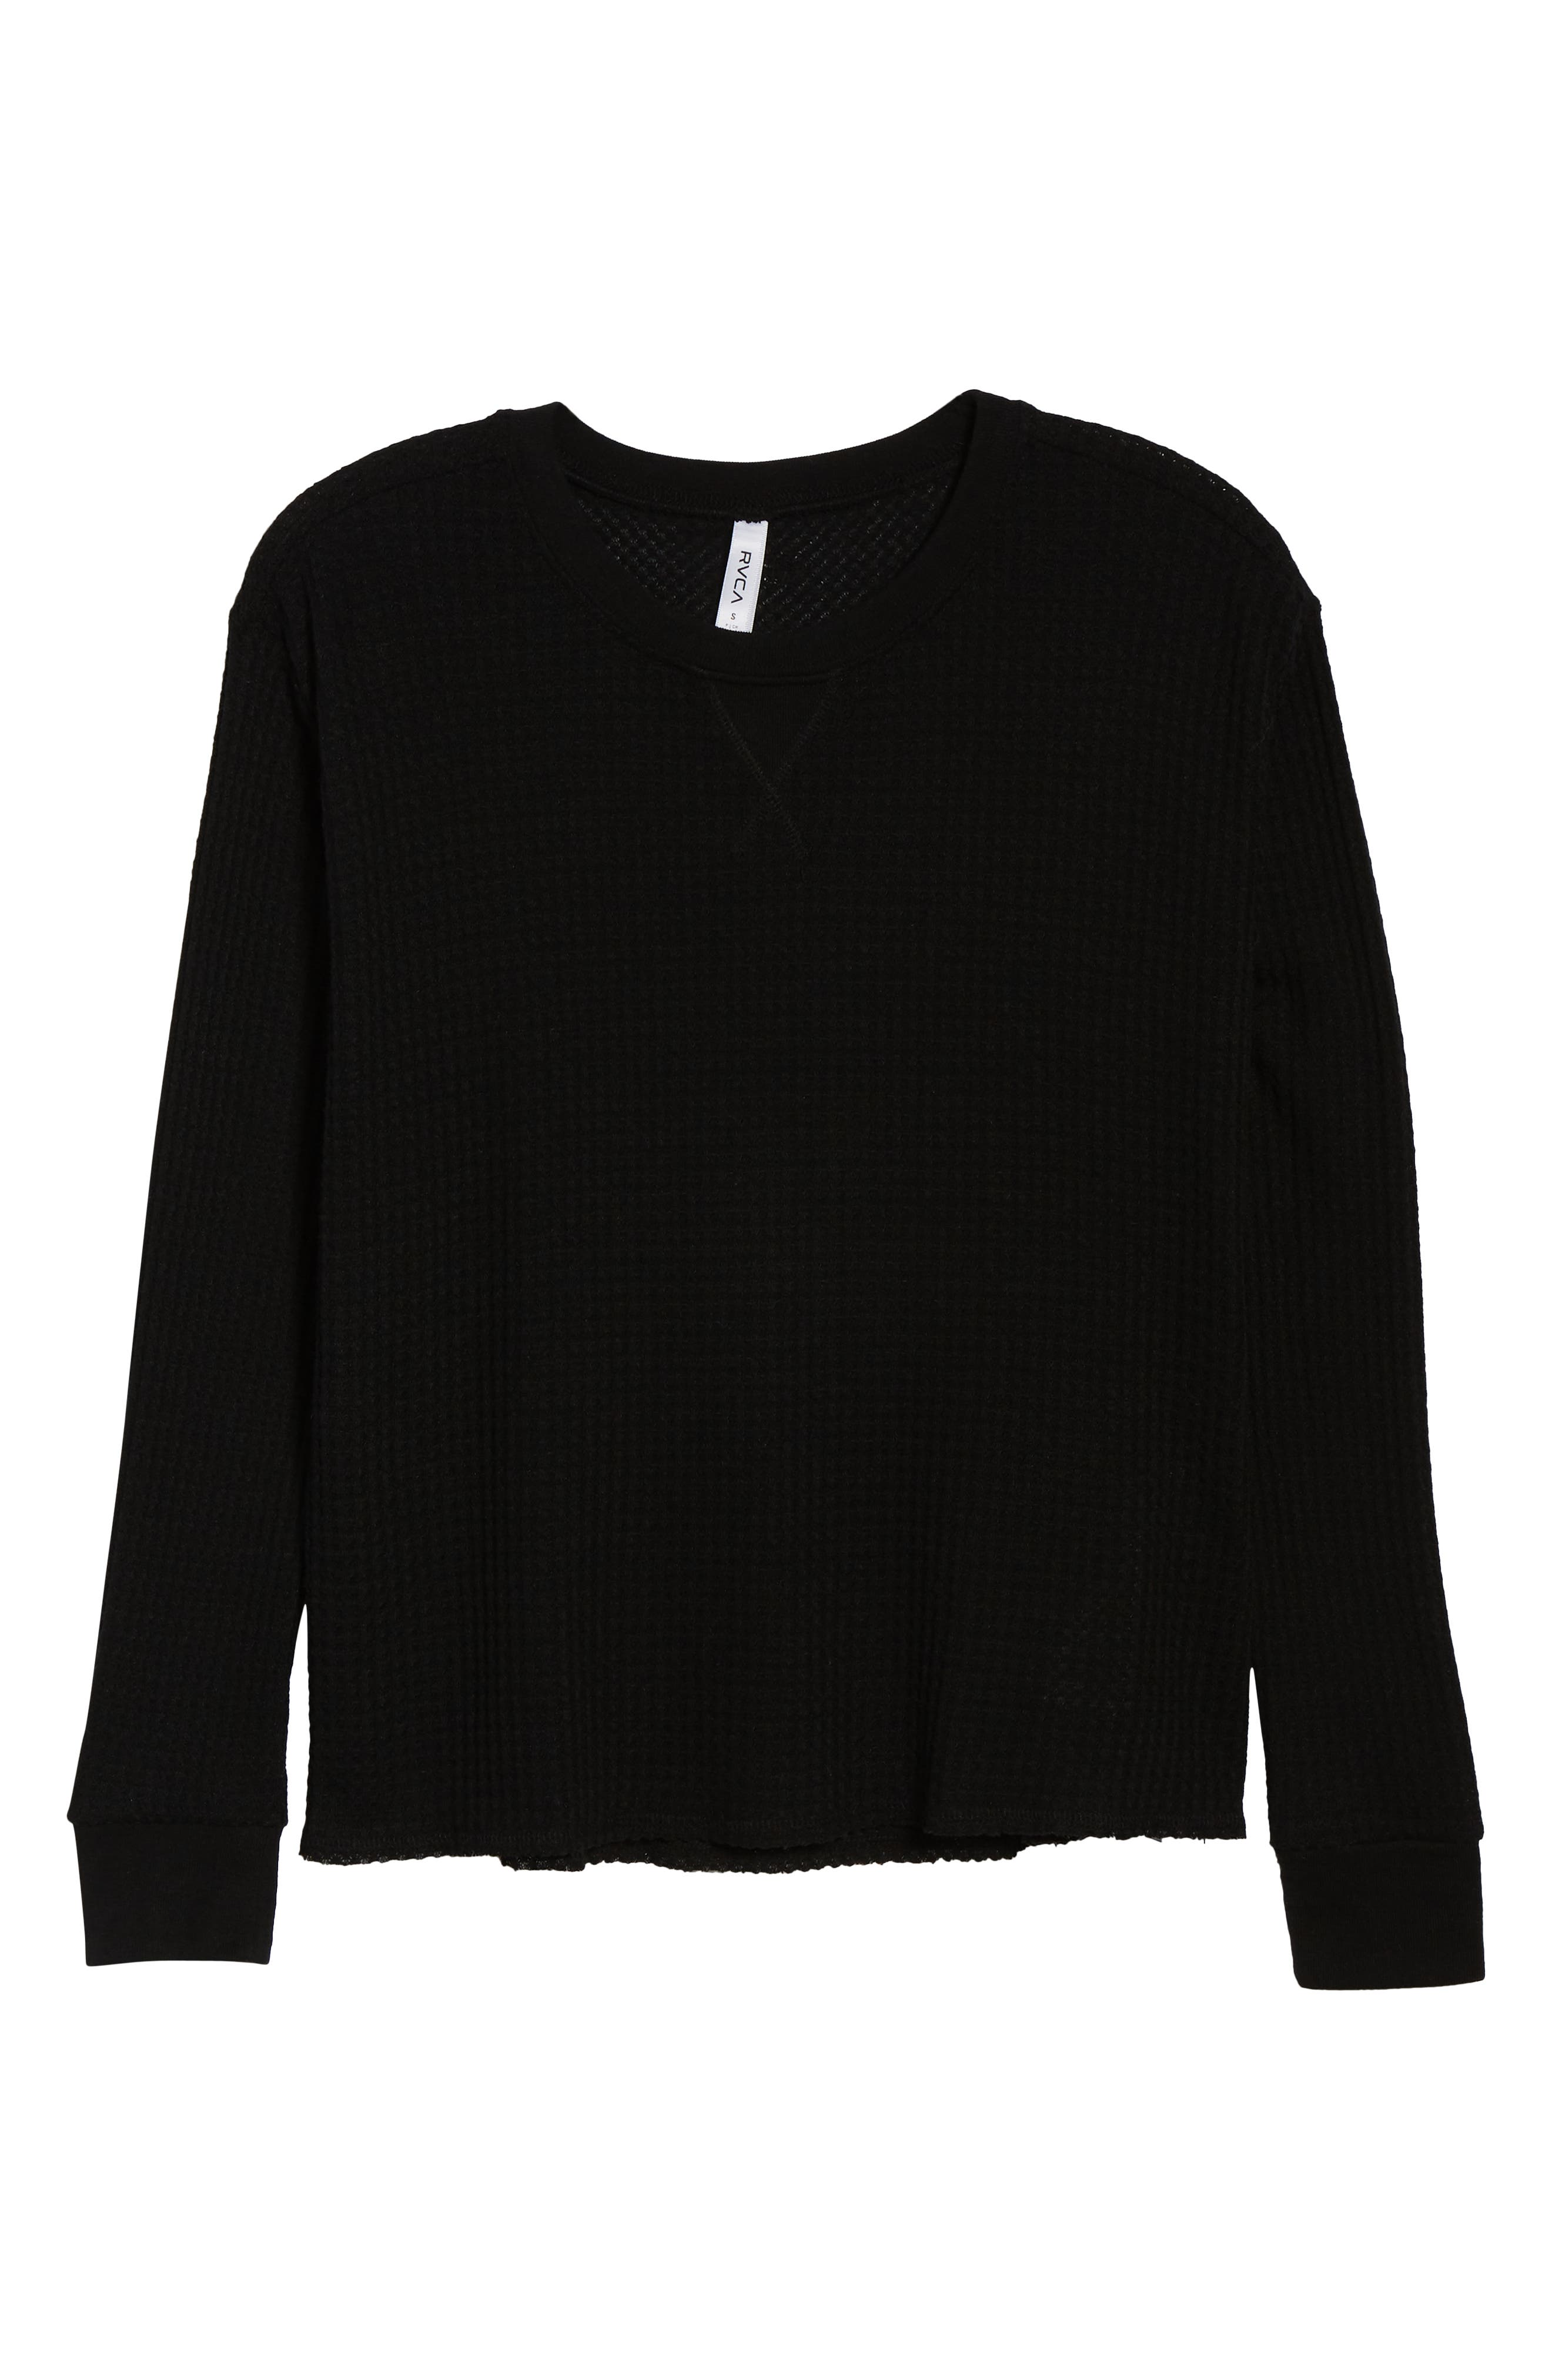 Cited Waffle Knit Pullover Top,                             Alternate thumbnail 6, color,                             001